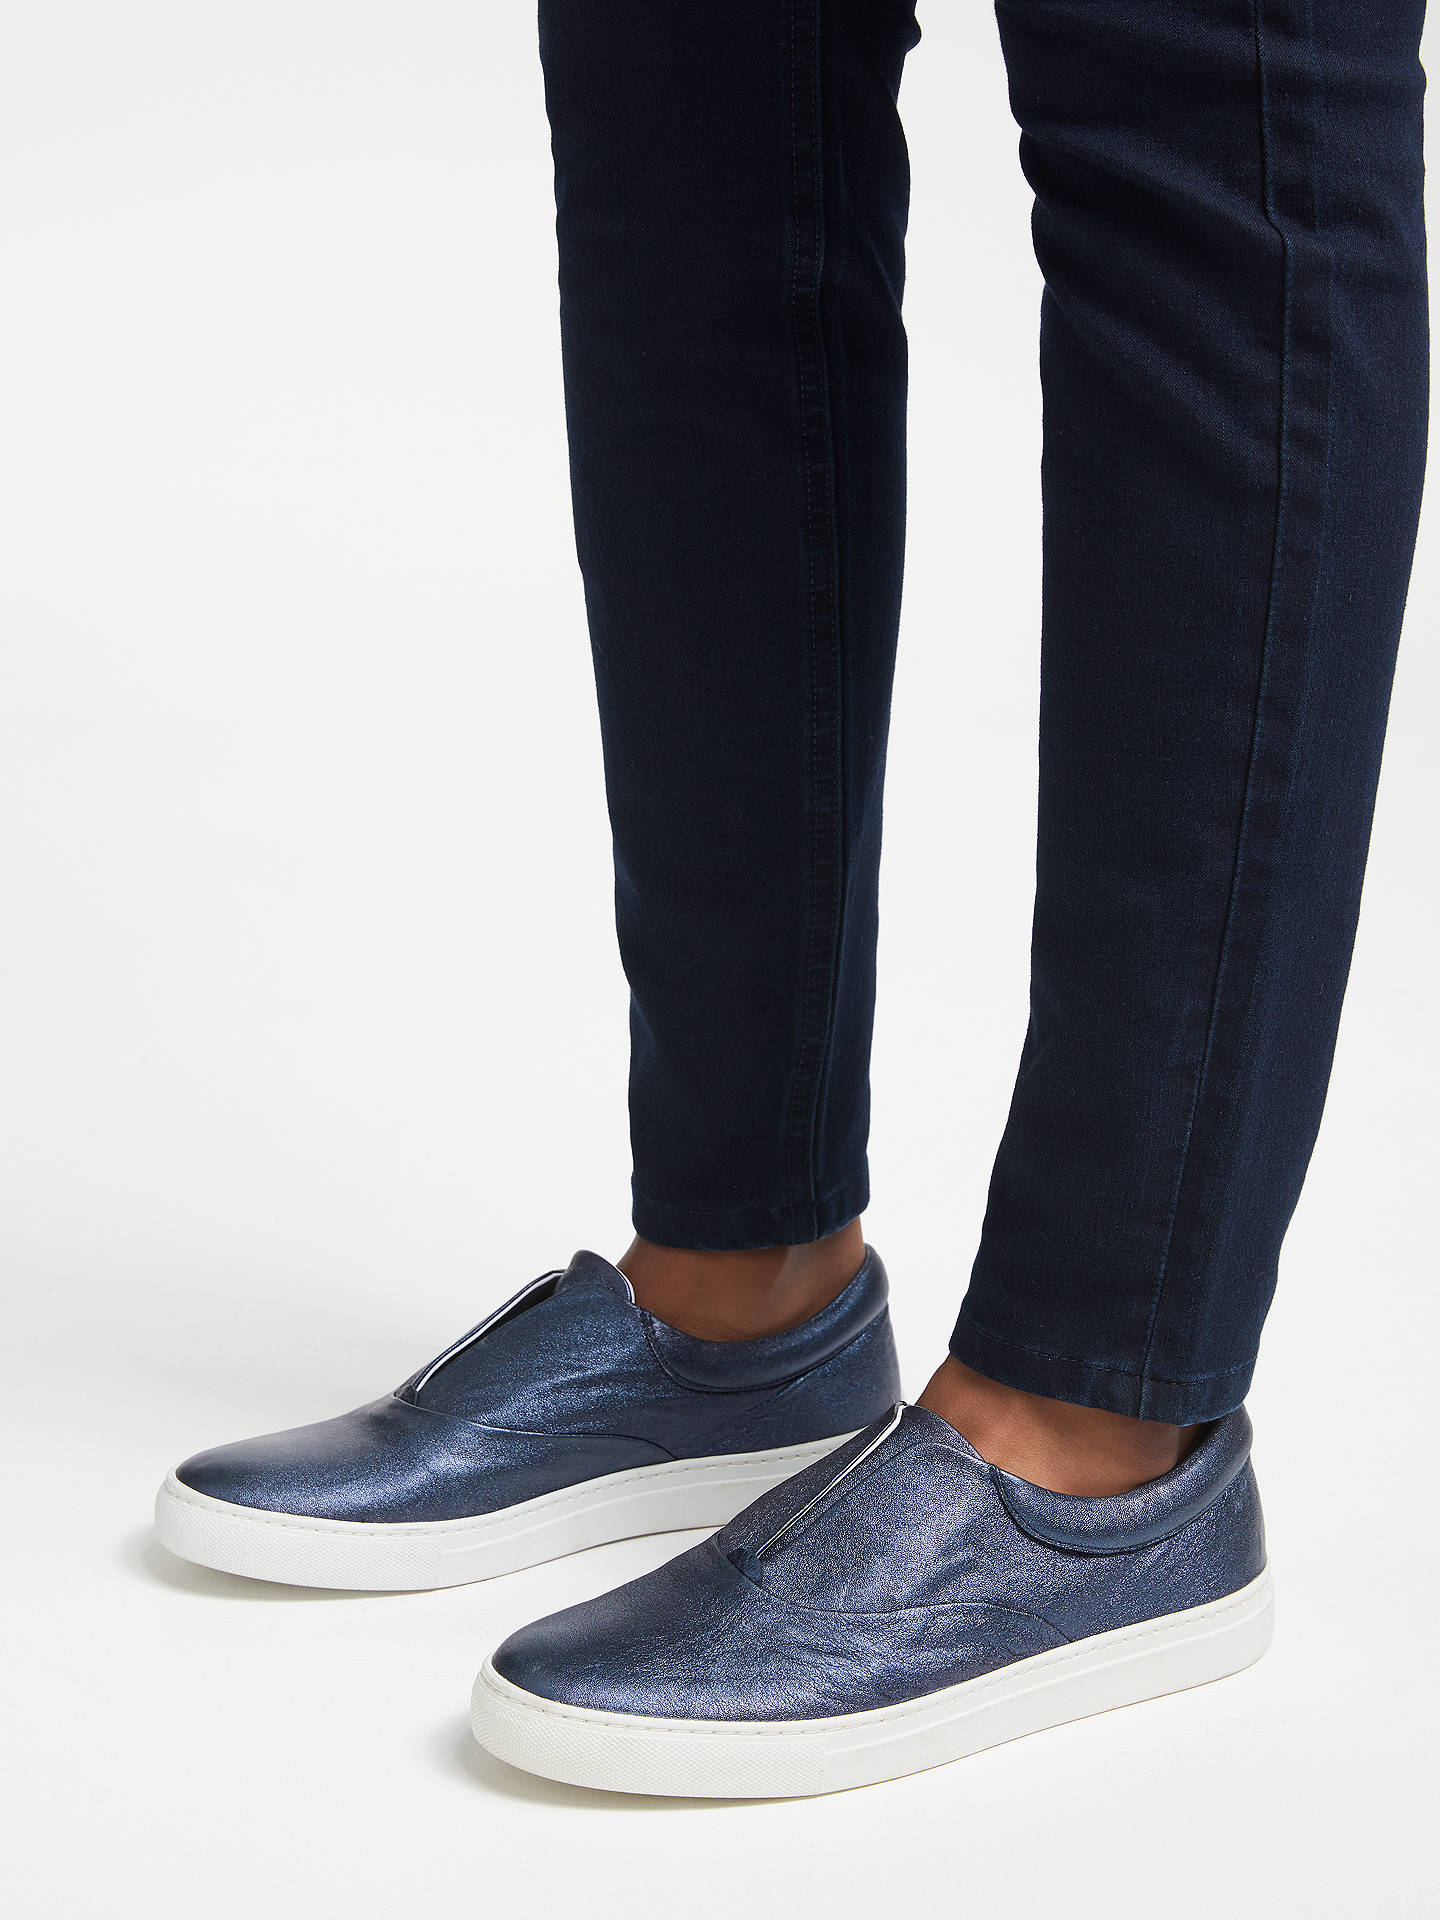 Buy Boden Metallic Slip On Trainers, Navy Leather, 4 Online at johnlewis.com